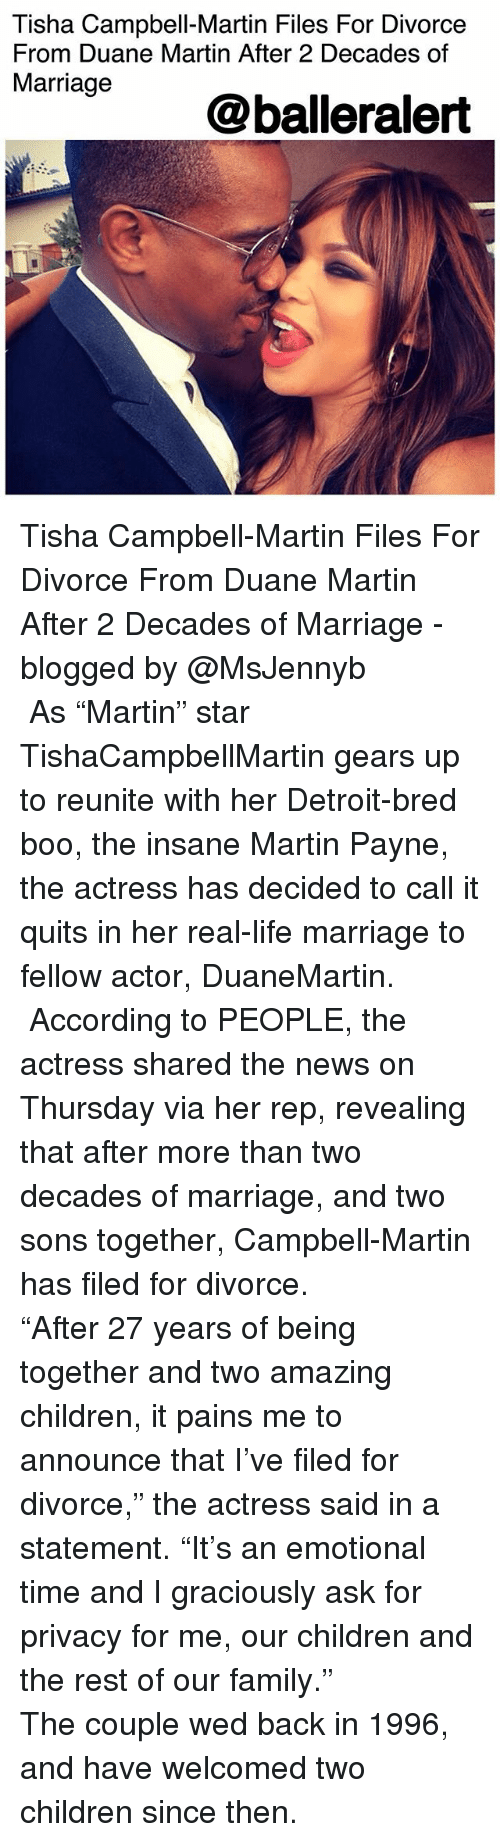 """duane: Tisha Campbell-Martin Files For Divorce  From Duane Martin After 2 Decades of  Marriage  @balleralert Tisha Campbell-Martin Files For Divorce From Duane Martin After 2 Decades of Marriage - blogged by @MsJennyb ⠀⠀⠀⠀⠀⠀⠀ ⠀⠀⠀⠀⠀⠀⠀ As """"Martin"""" star TishaCampbellMartin gears up to reunite with her Detroit-bred boo, the insane Martin Payne, the actress has decided to call it quits in her real-life marriage to fellow actor, DuaneMartin. ⠀⠀⠀⠀⠀⠀⠀ ⠀⠀⠀⠀⠀⠀⠀ According to PEOPLE, the actress shared the news on Thursday via her rep, revealing that after more than two decades of marriage, and two sons together, Campbell-Martin has filed for divorce. ⠀⠀⠀⠀⠀⠀⠀ ⠀⠀⠀⠀⠀⠀⠀ """"After 27 years of being together and two amazing children, it pains me to announce that I've filed for divorce,"""" the actress said in a statement. """"It's an emotional time and I graciously ask for privacy for me, our children and the rest of our family."""" ⠀⠀⠀⠀⠀⠀⠀ ⠀⠀⠀⠀⠀⠀⠀ The couple wed back in 1996, and have welcomed two children since then."""